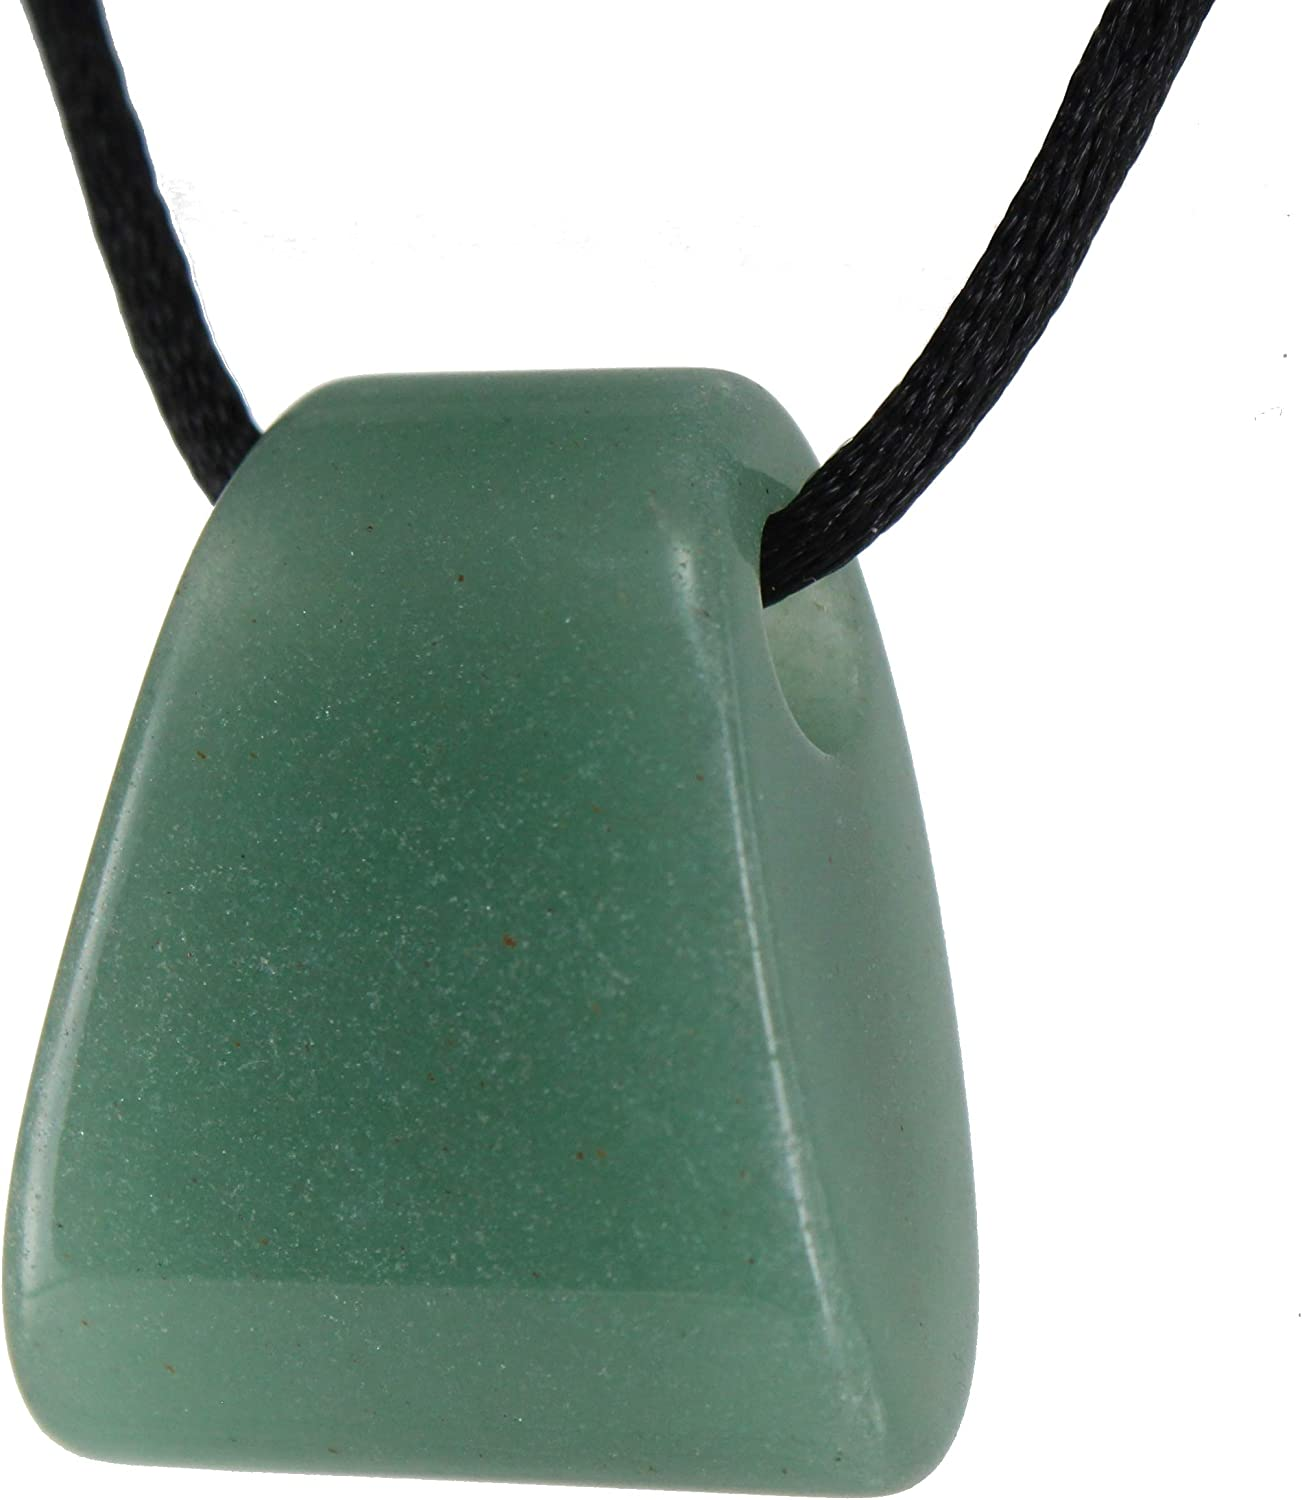 Limited Edition - Core Elements - 30mm Keystone Axe Wedge Shaped Aventurine, Green - Black Cord – Natural Stone Crystal Gemstone Pendant Necklace Charm